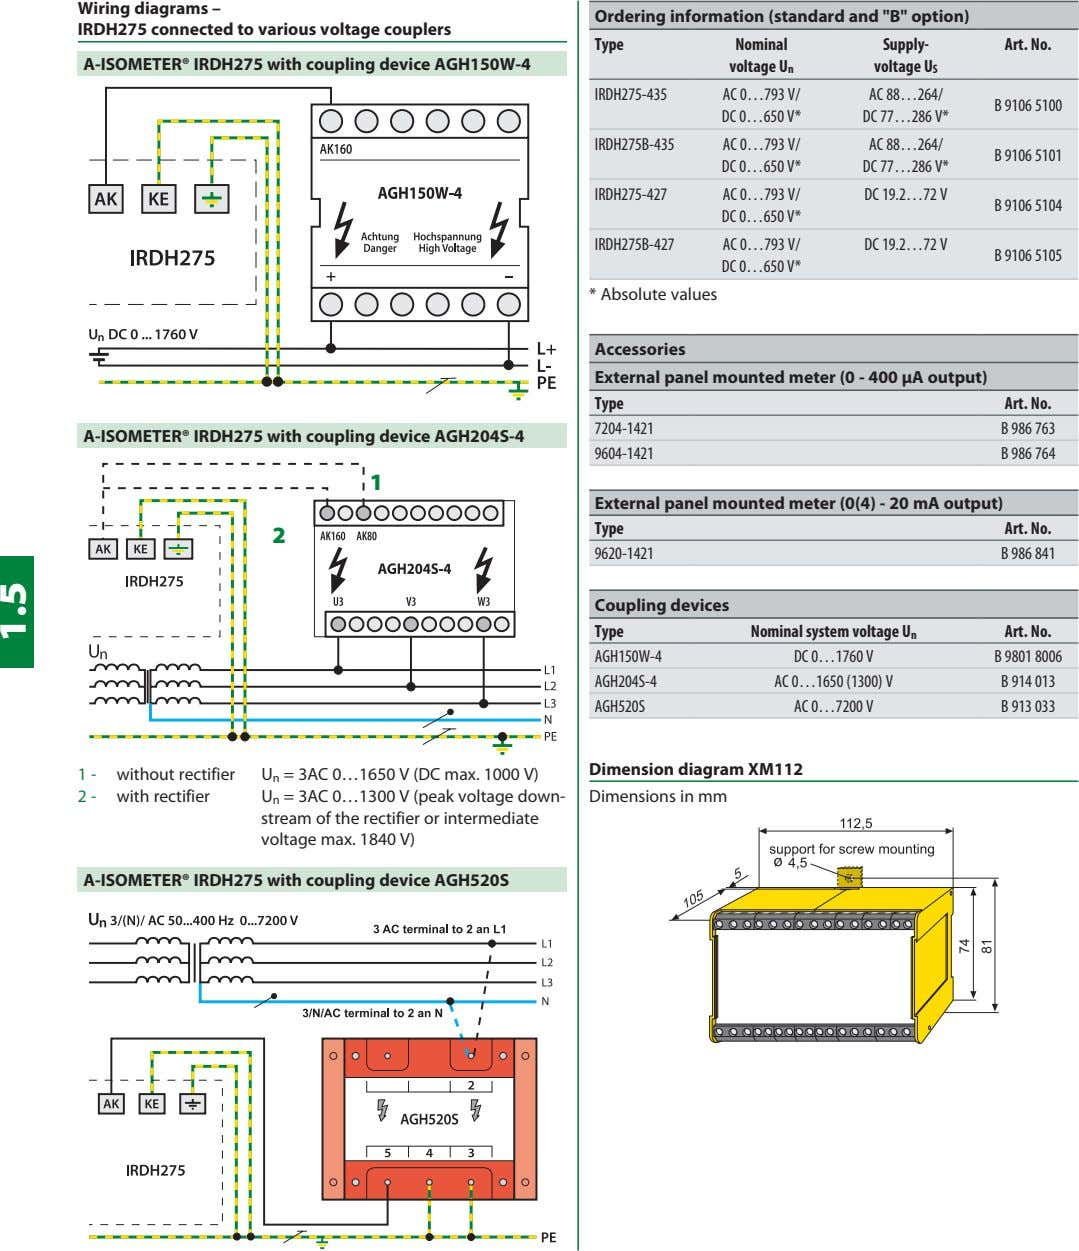 "Wiring diagrams – IRDH275 connected to various voltage couplers Ordering information (standard and ""B"" option)"